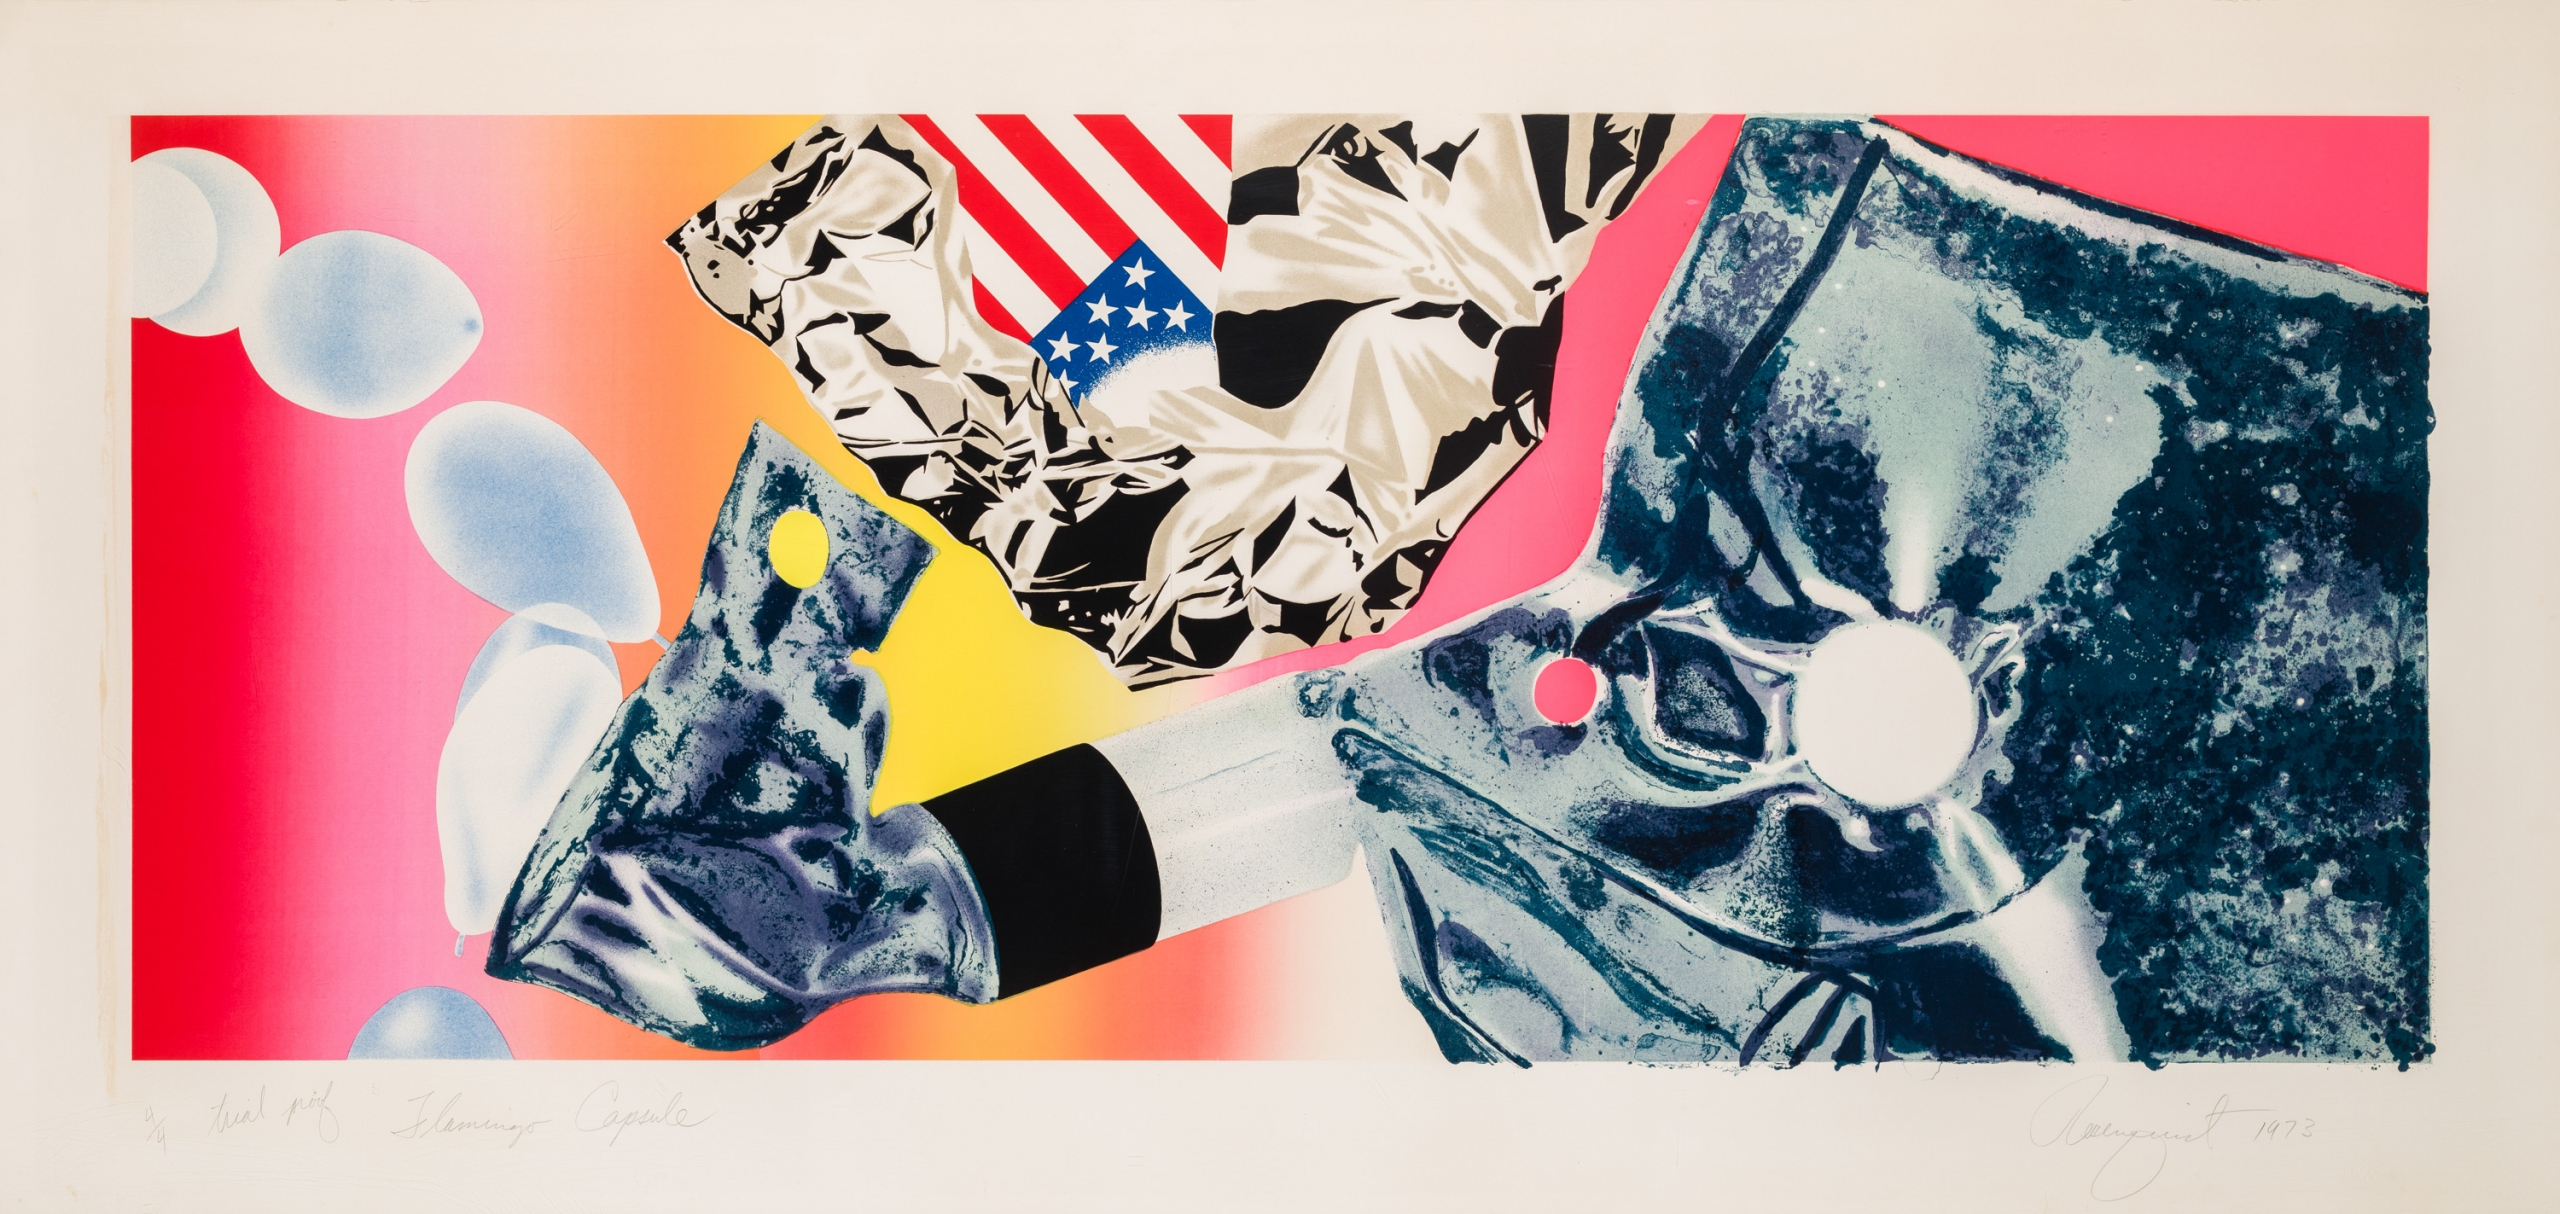 James Rosenquist, Flamingo Capsule